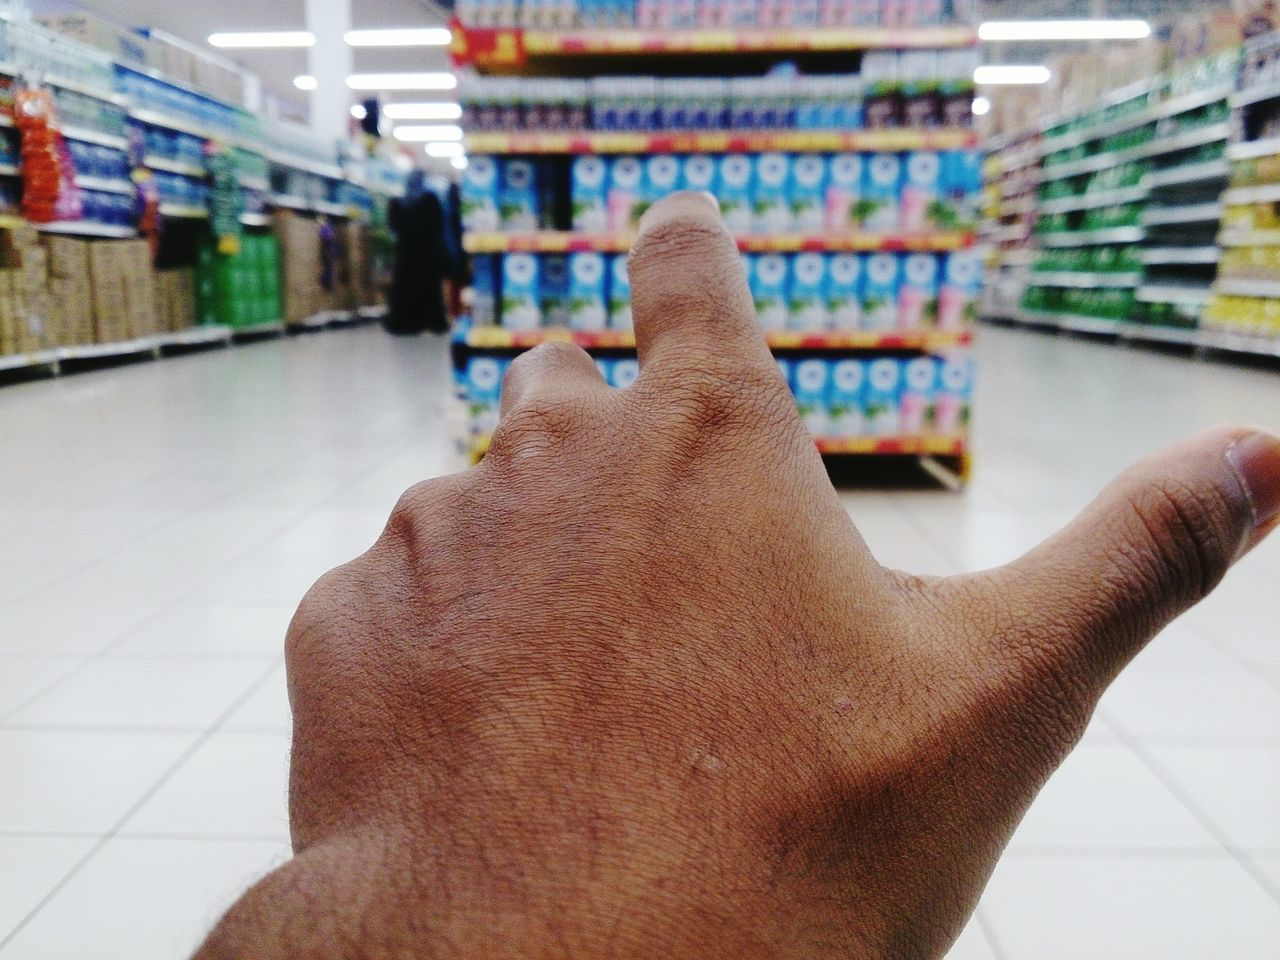 Cropped image of hand gesturing in supermarket